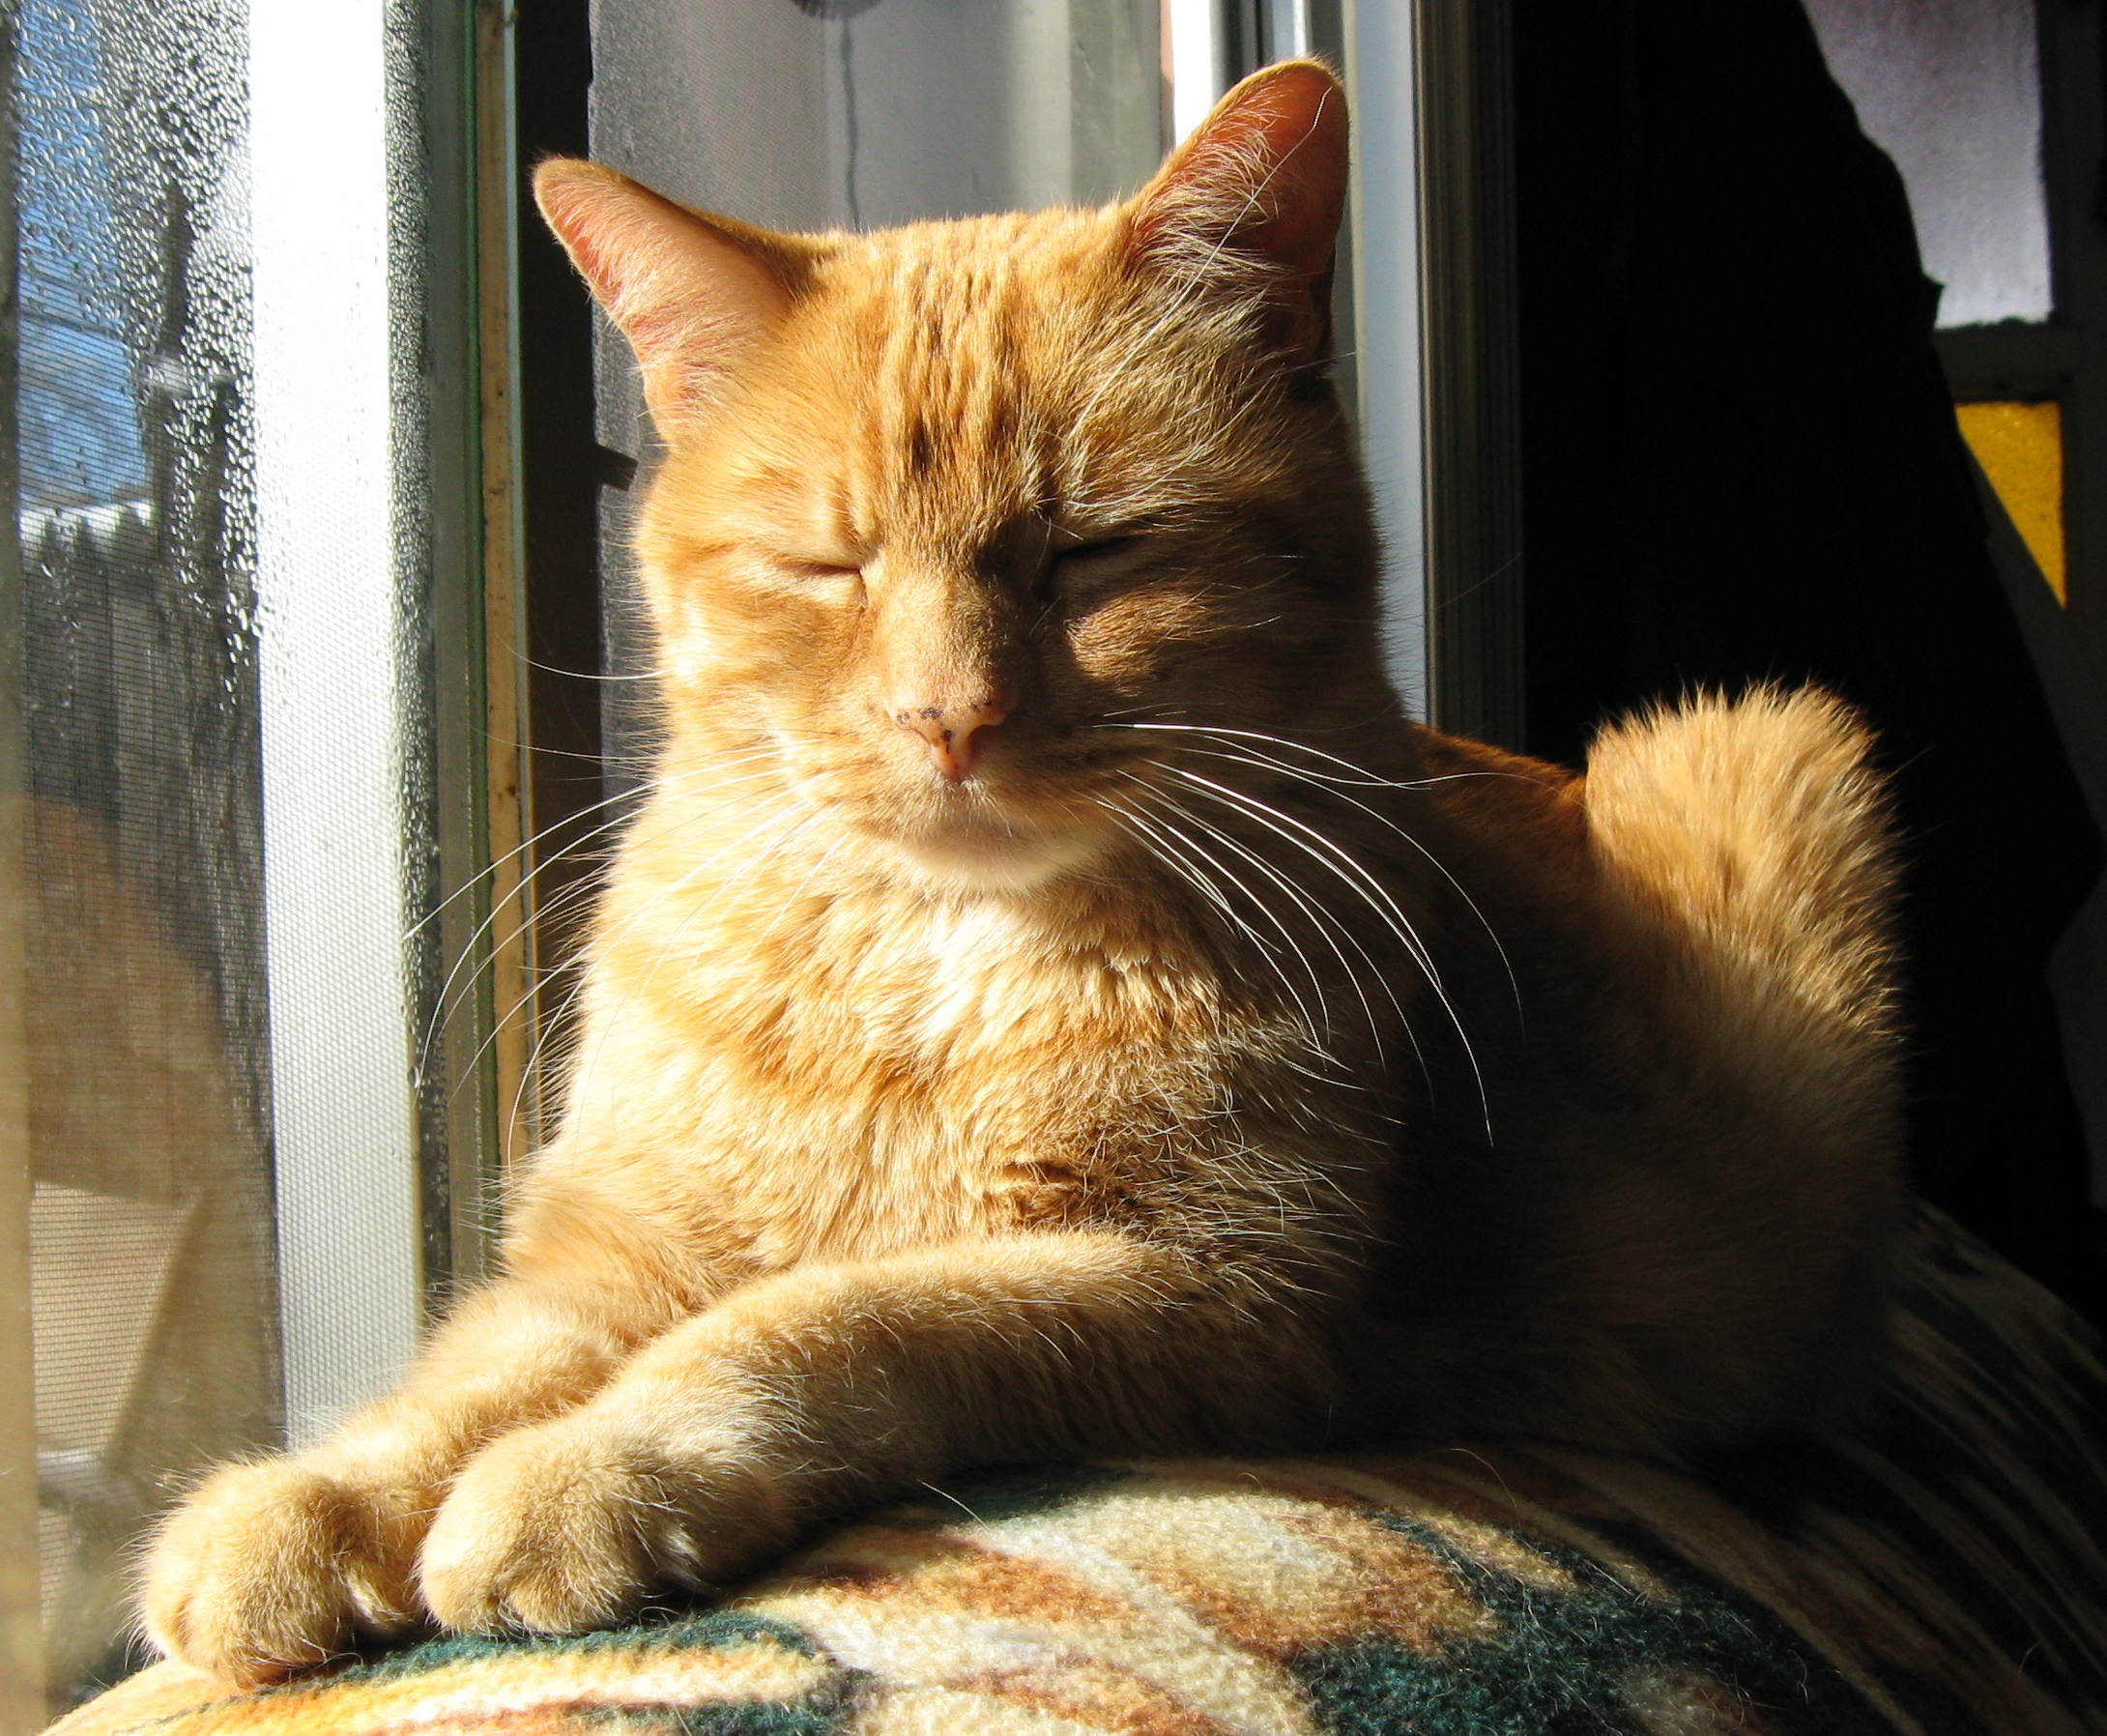 Are Orange Tabby Cats Good Pets